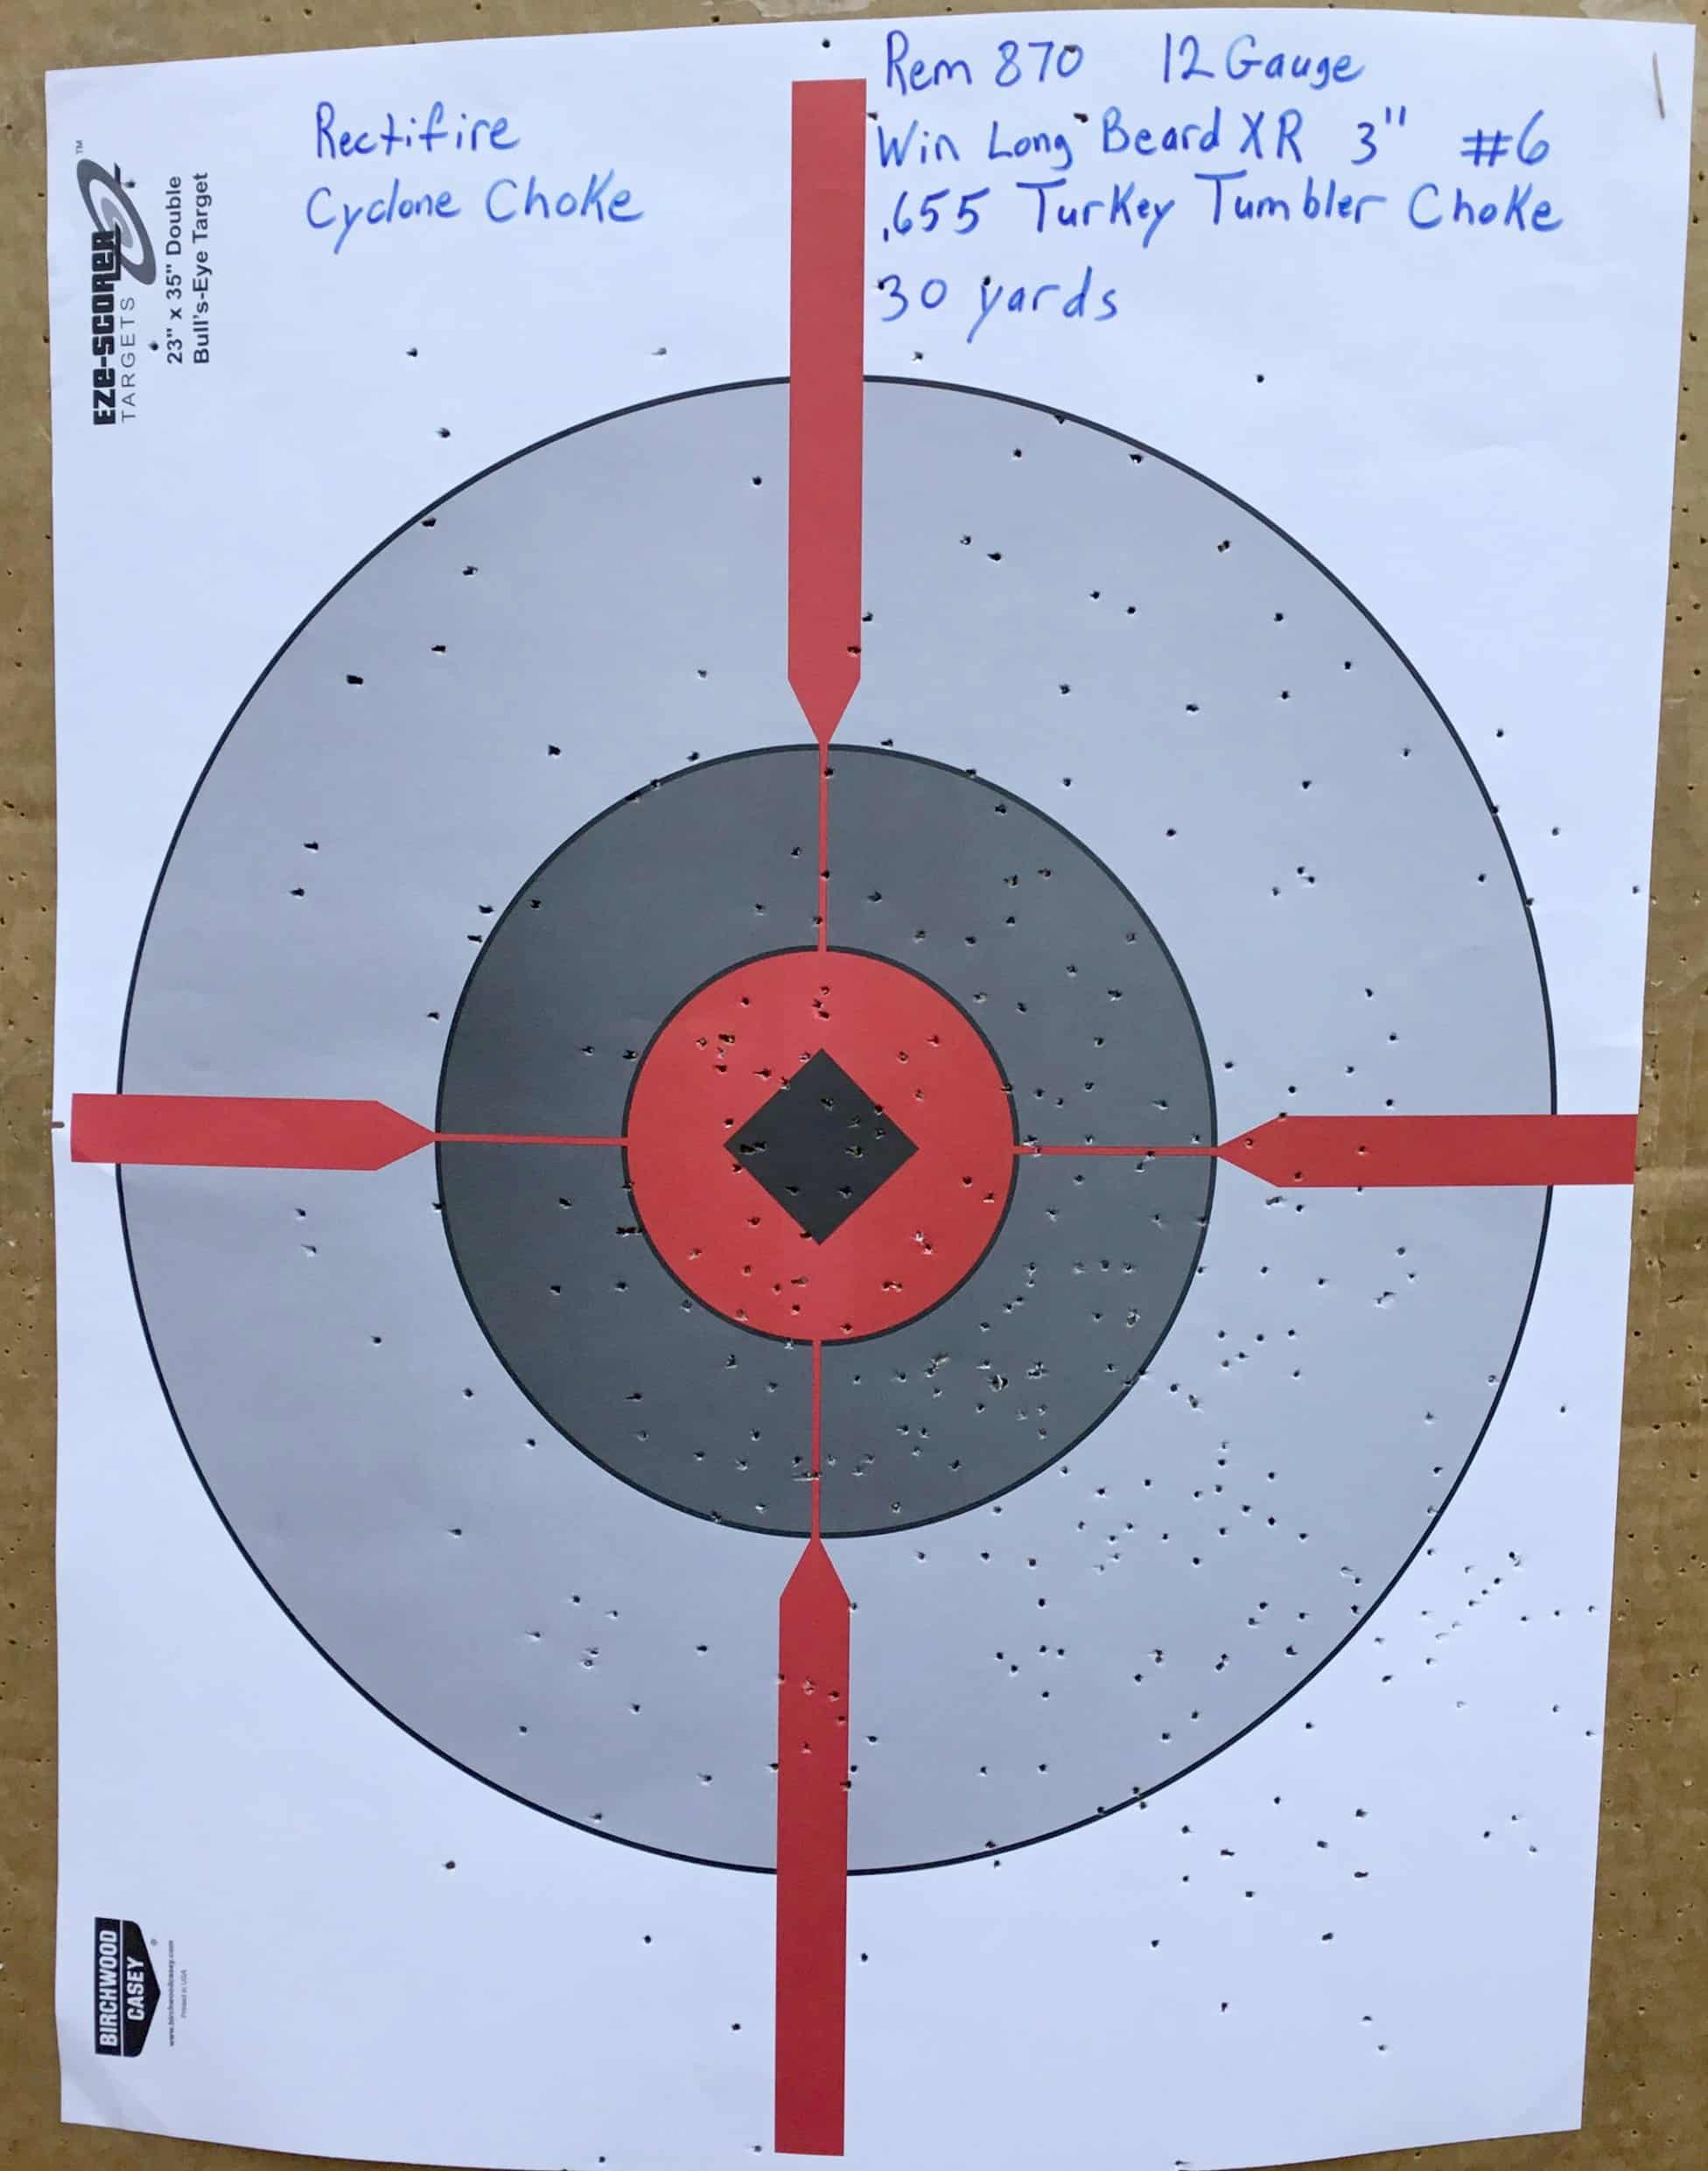 Remington 870 12 Gauge @ 30 yds.